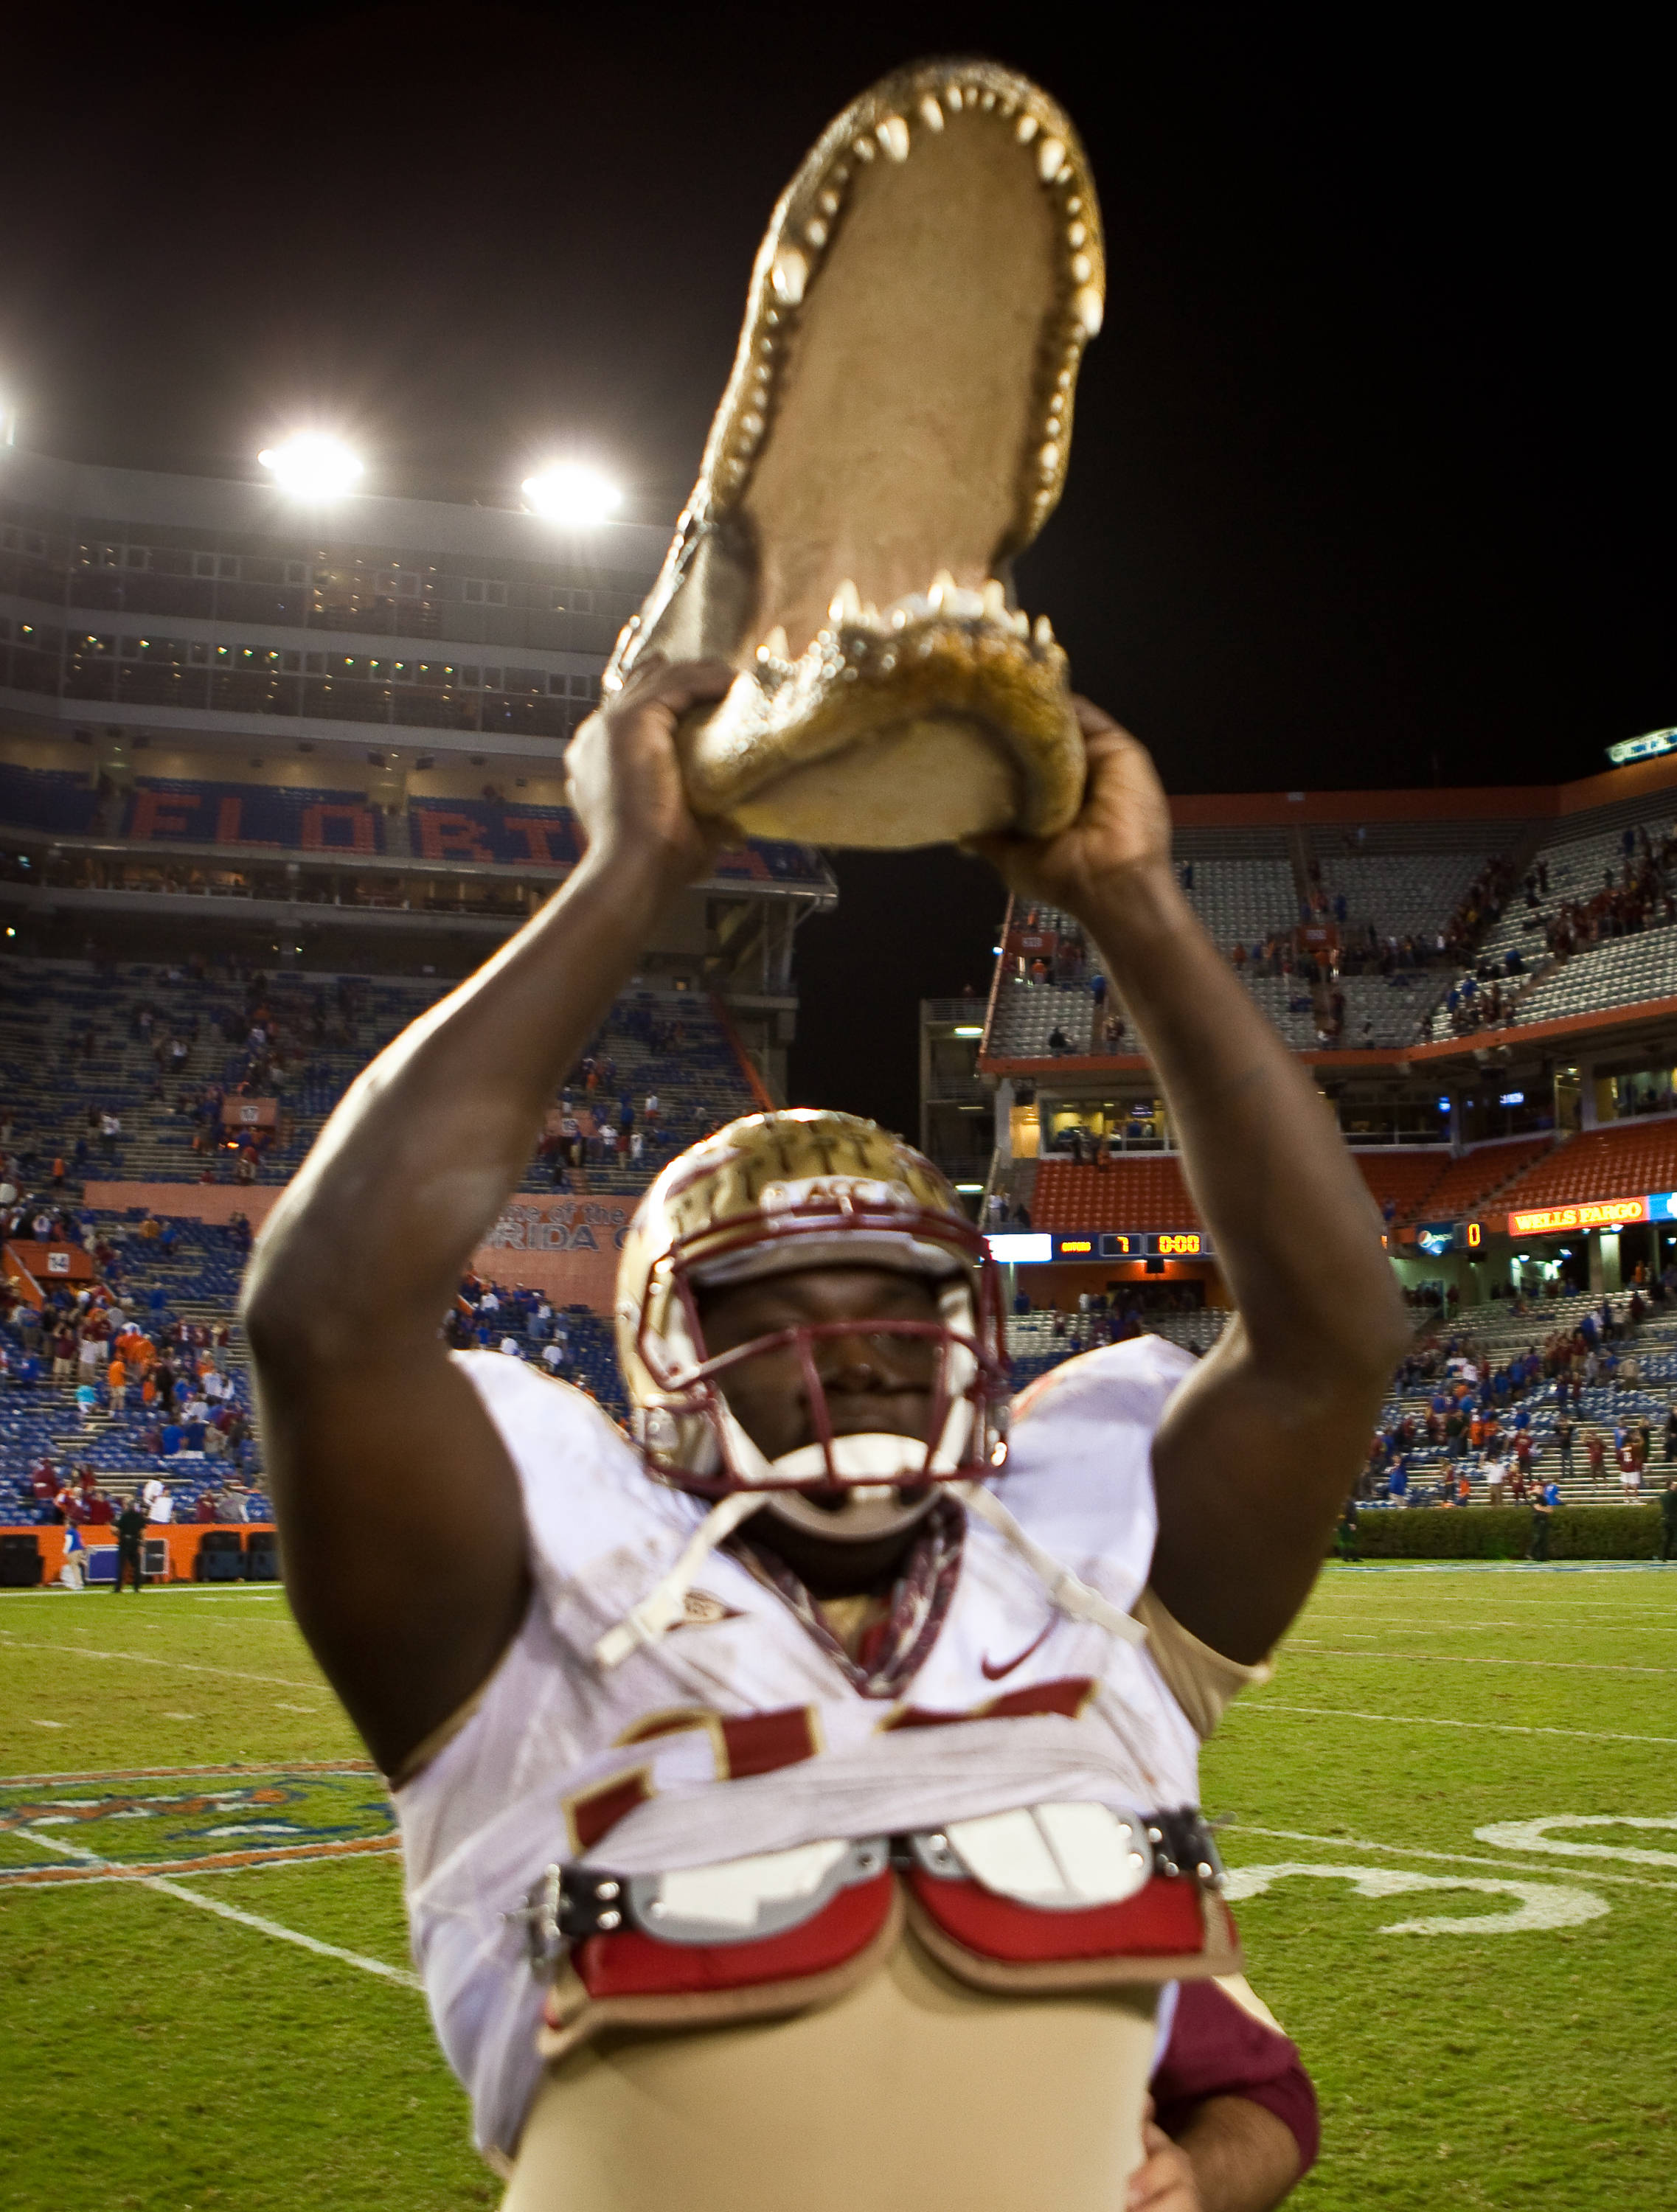 Anthony McCloud (92) hoists the Gator Head high after the Seminoles' victory over the Gators in the Gainesville